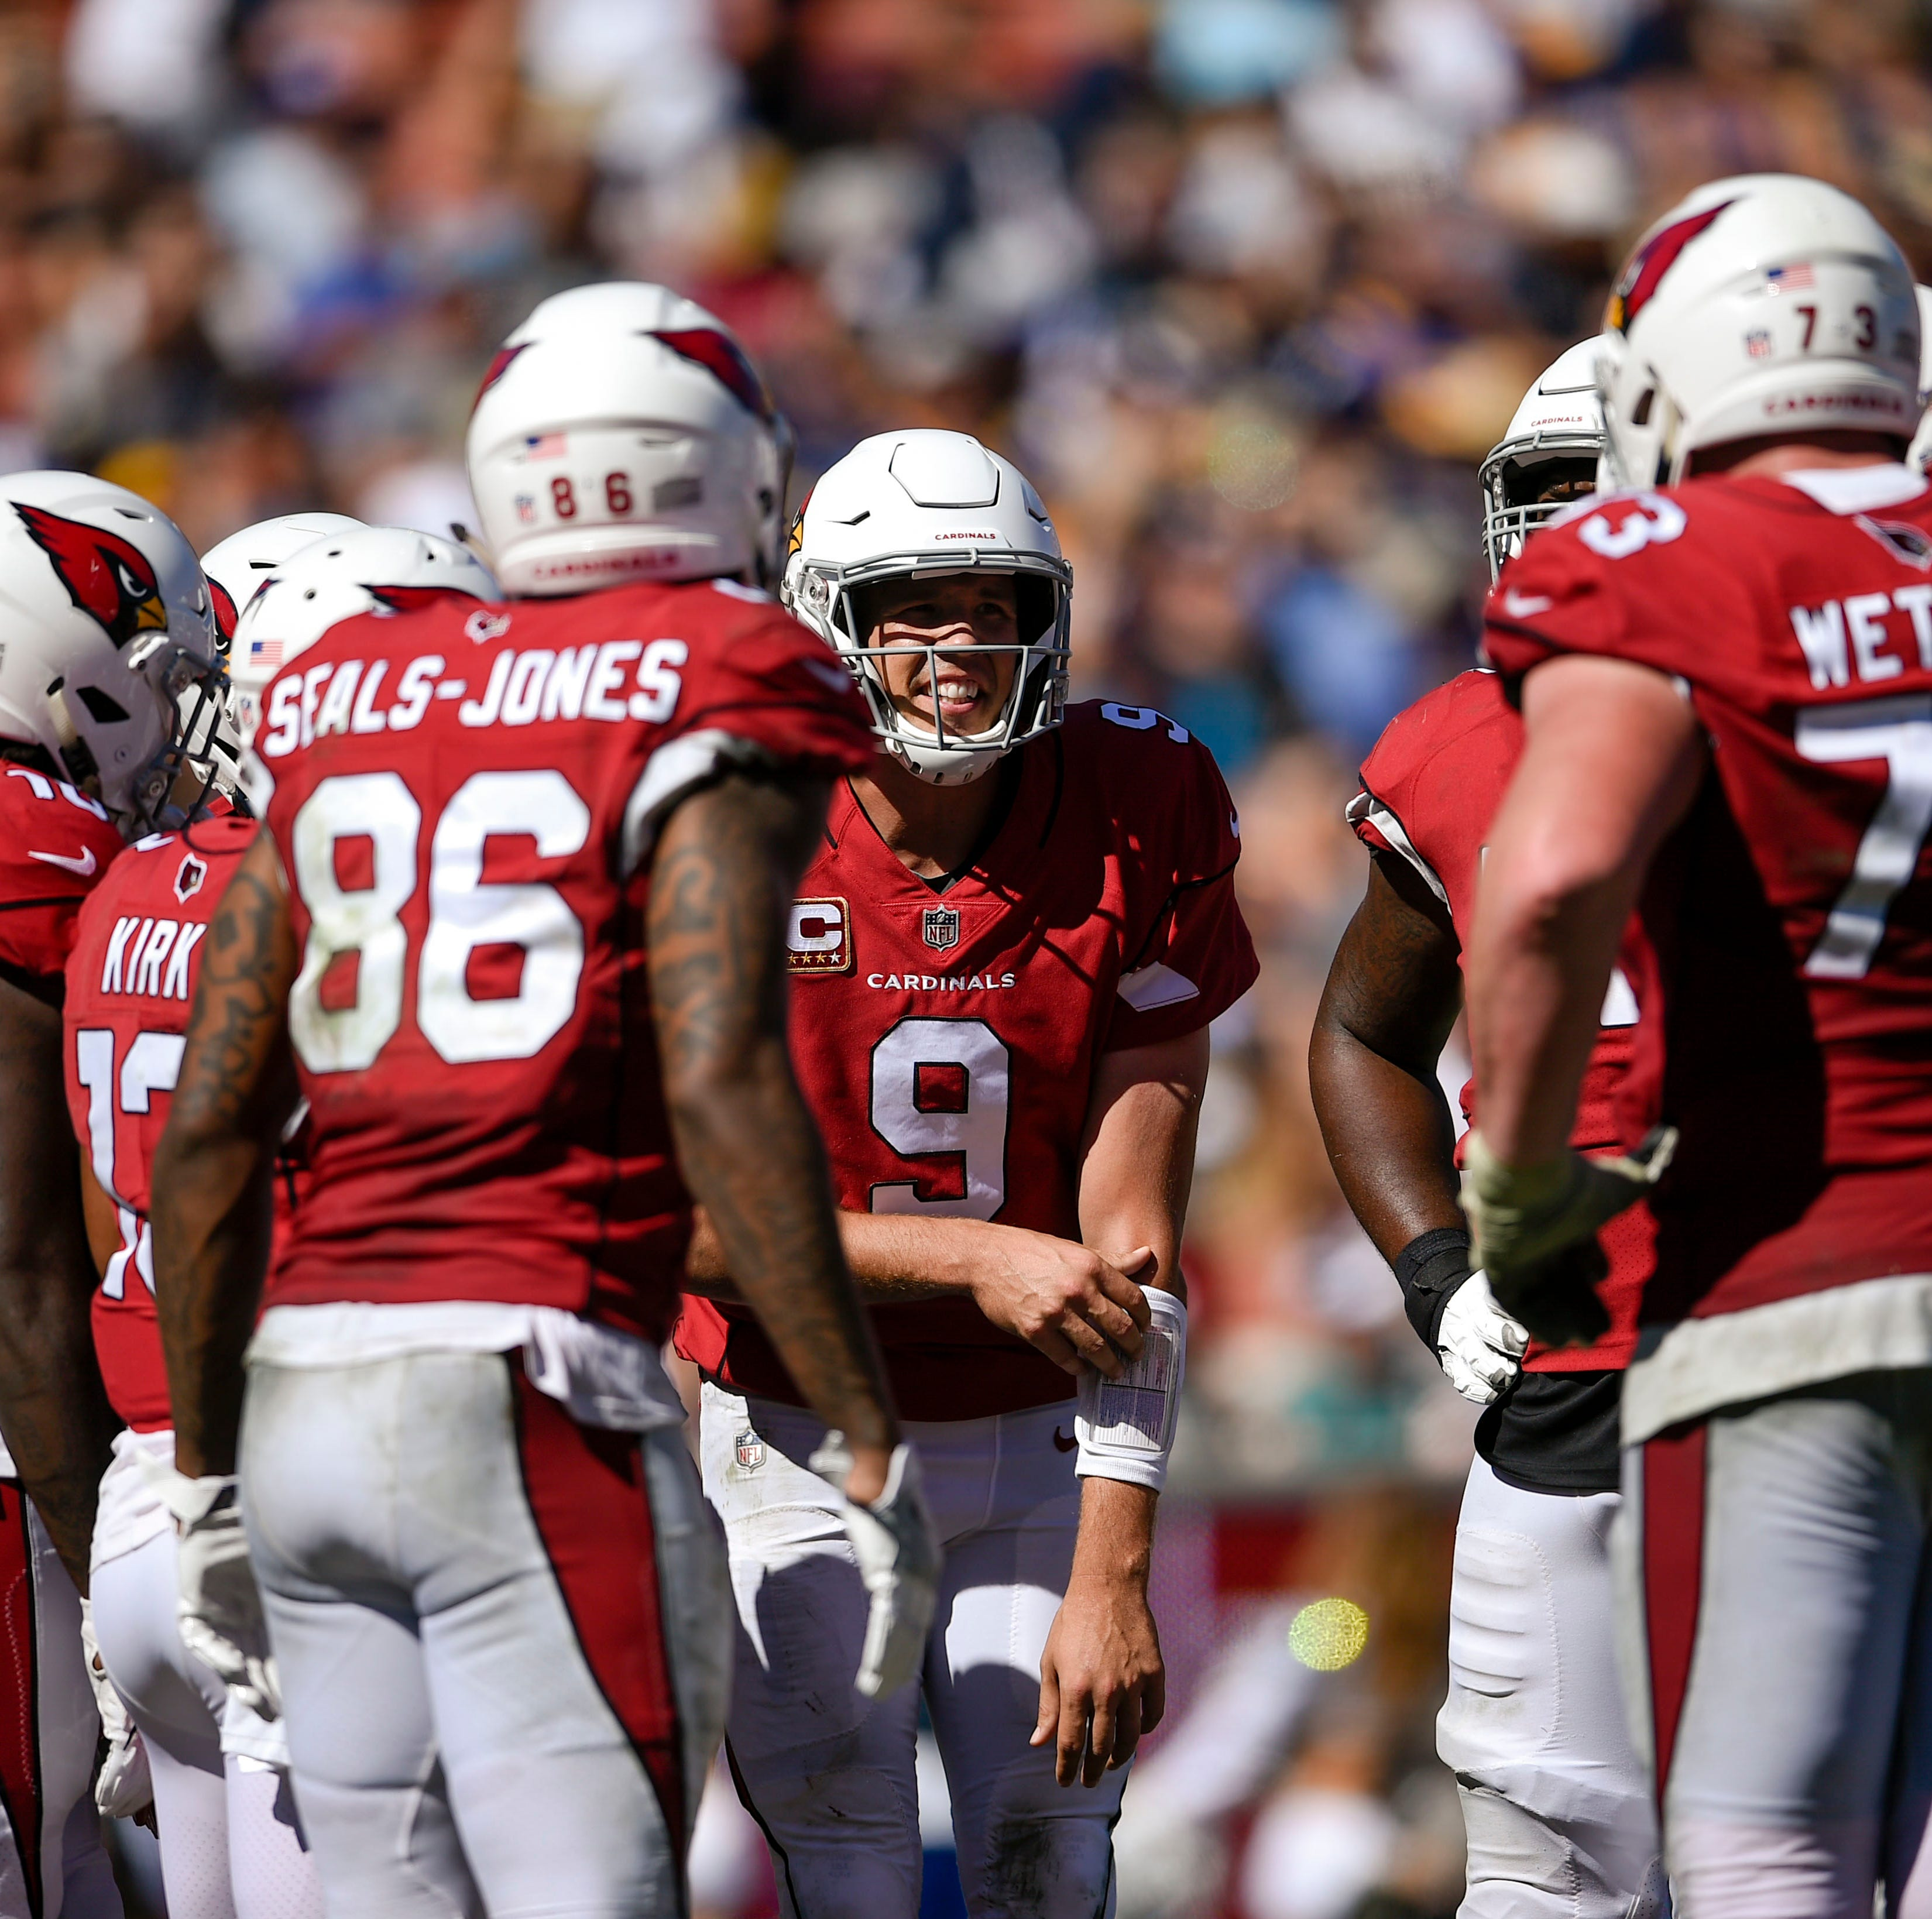 From 0-2 to NFL playoffs: Do Arizona Cardinals have a chance to make 2018 postseason?